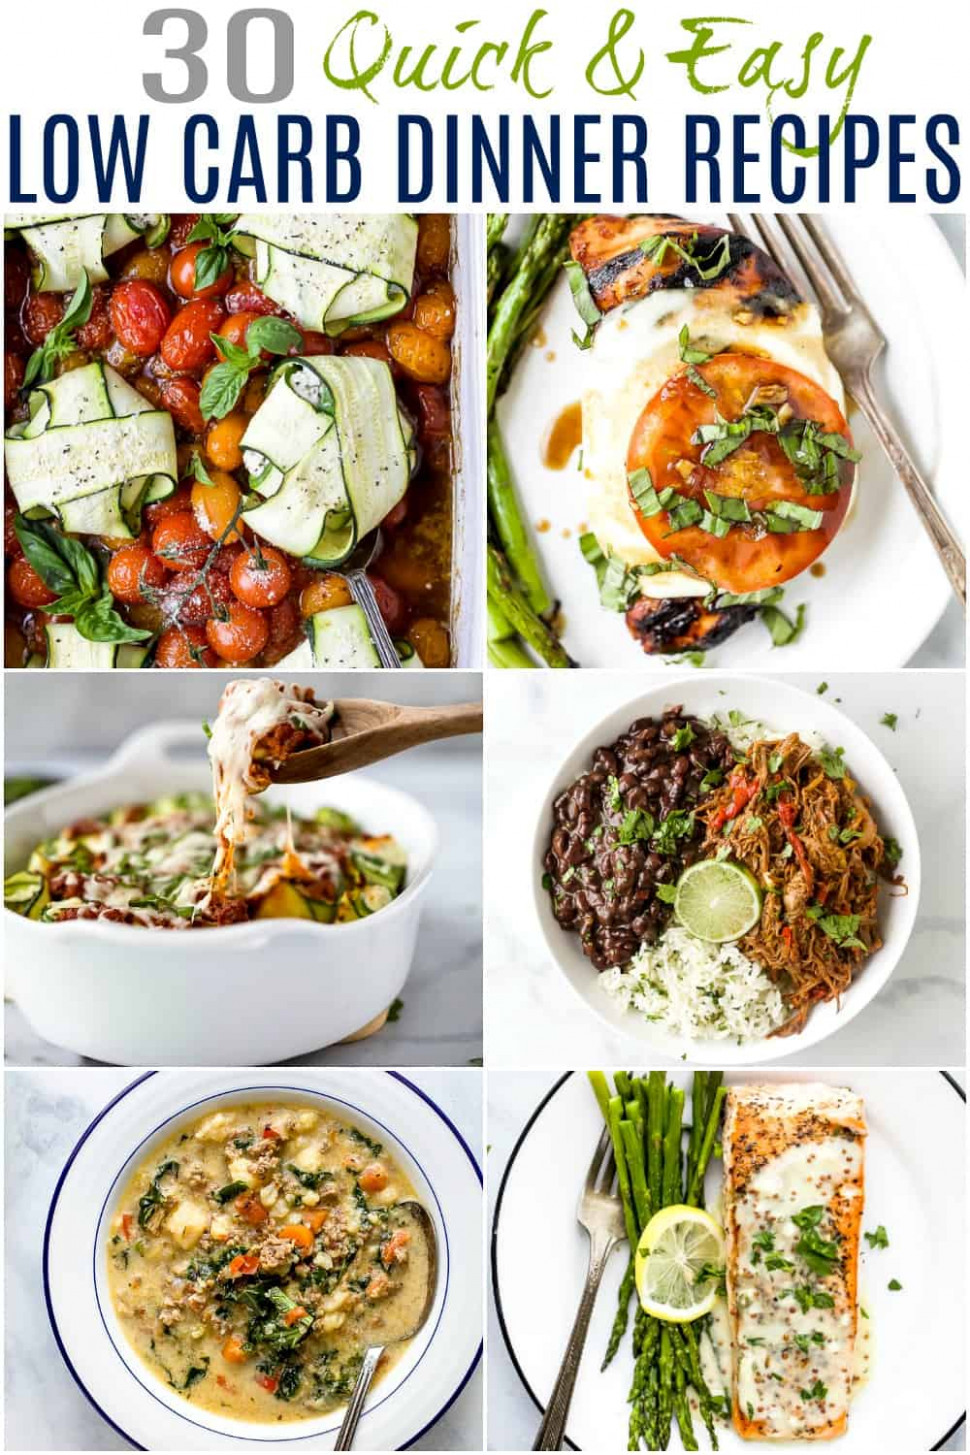 30 Quick Easy Low Carb Dinner Recipes | Low Carb Recipes ..